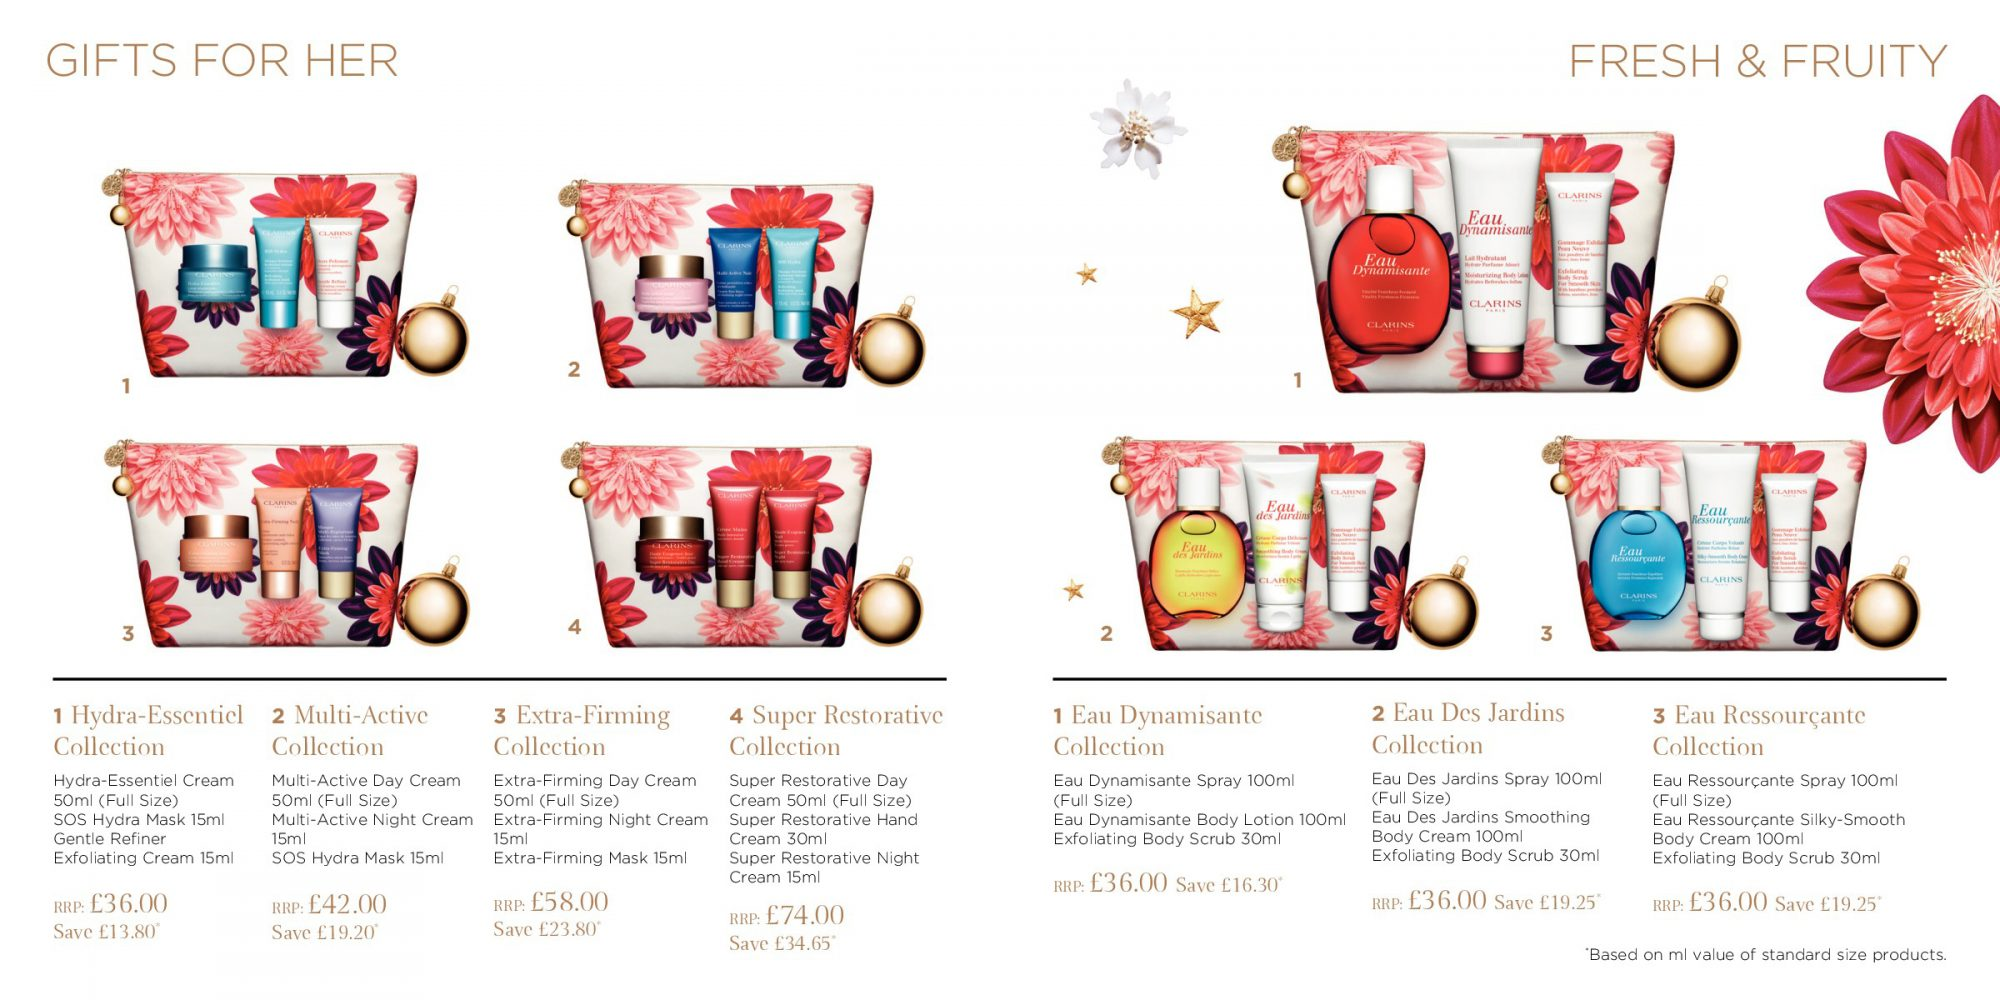 Clarins Brochure Christmas Gifts Spread 2 - Gifts for Her 3 and Fresh & Fruity 2018